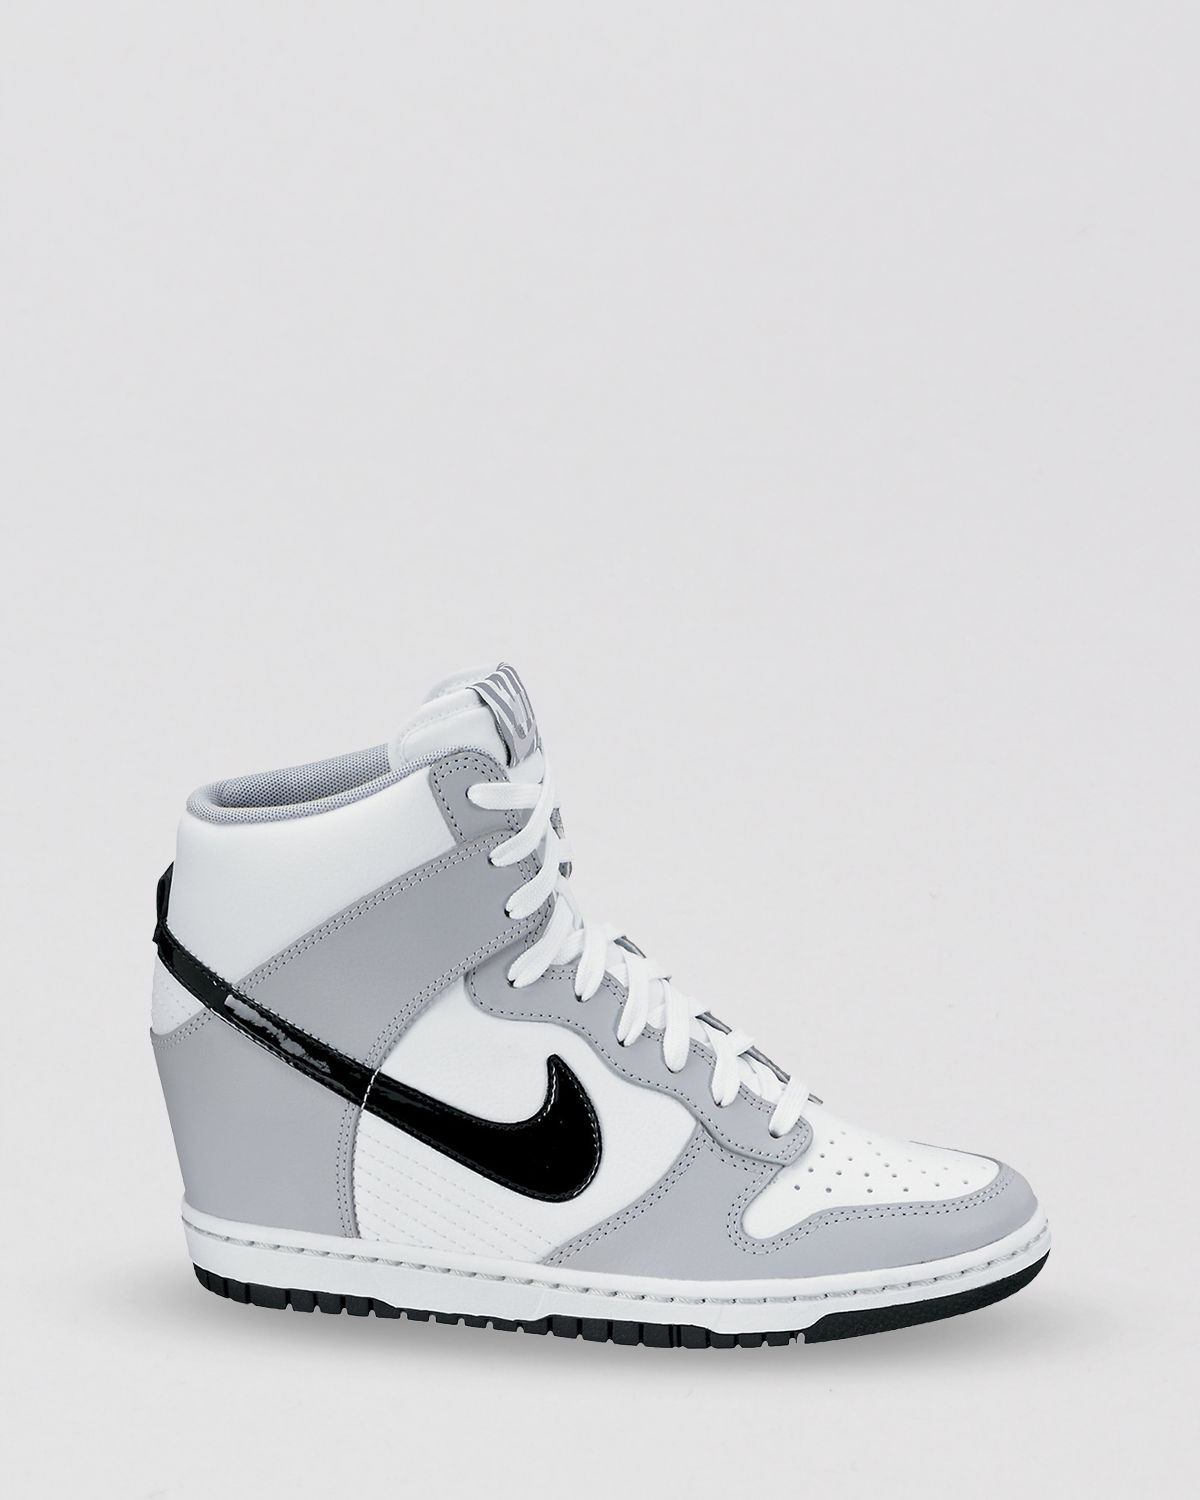 Nike Dunks Womens Shoes